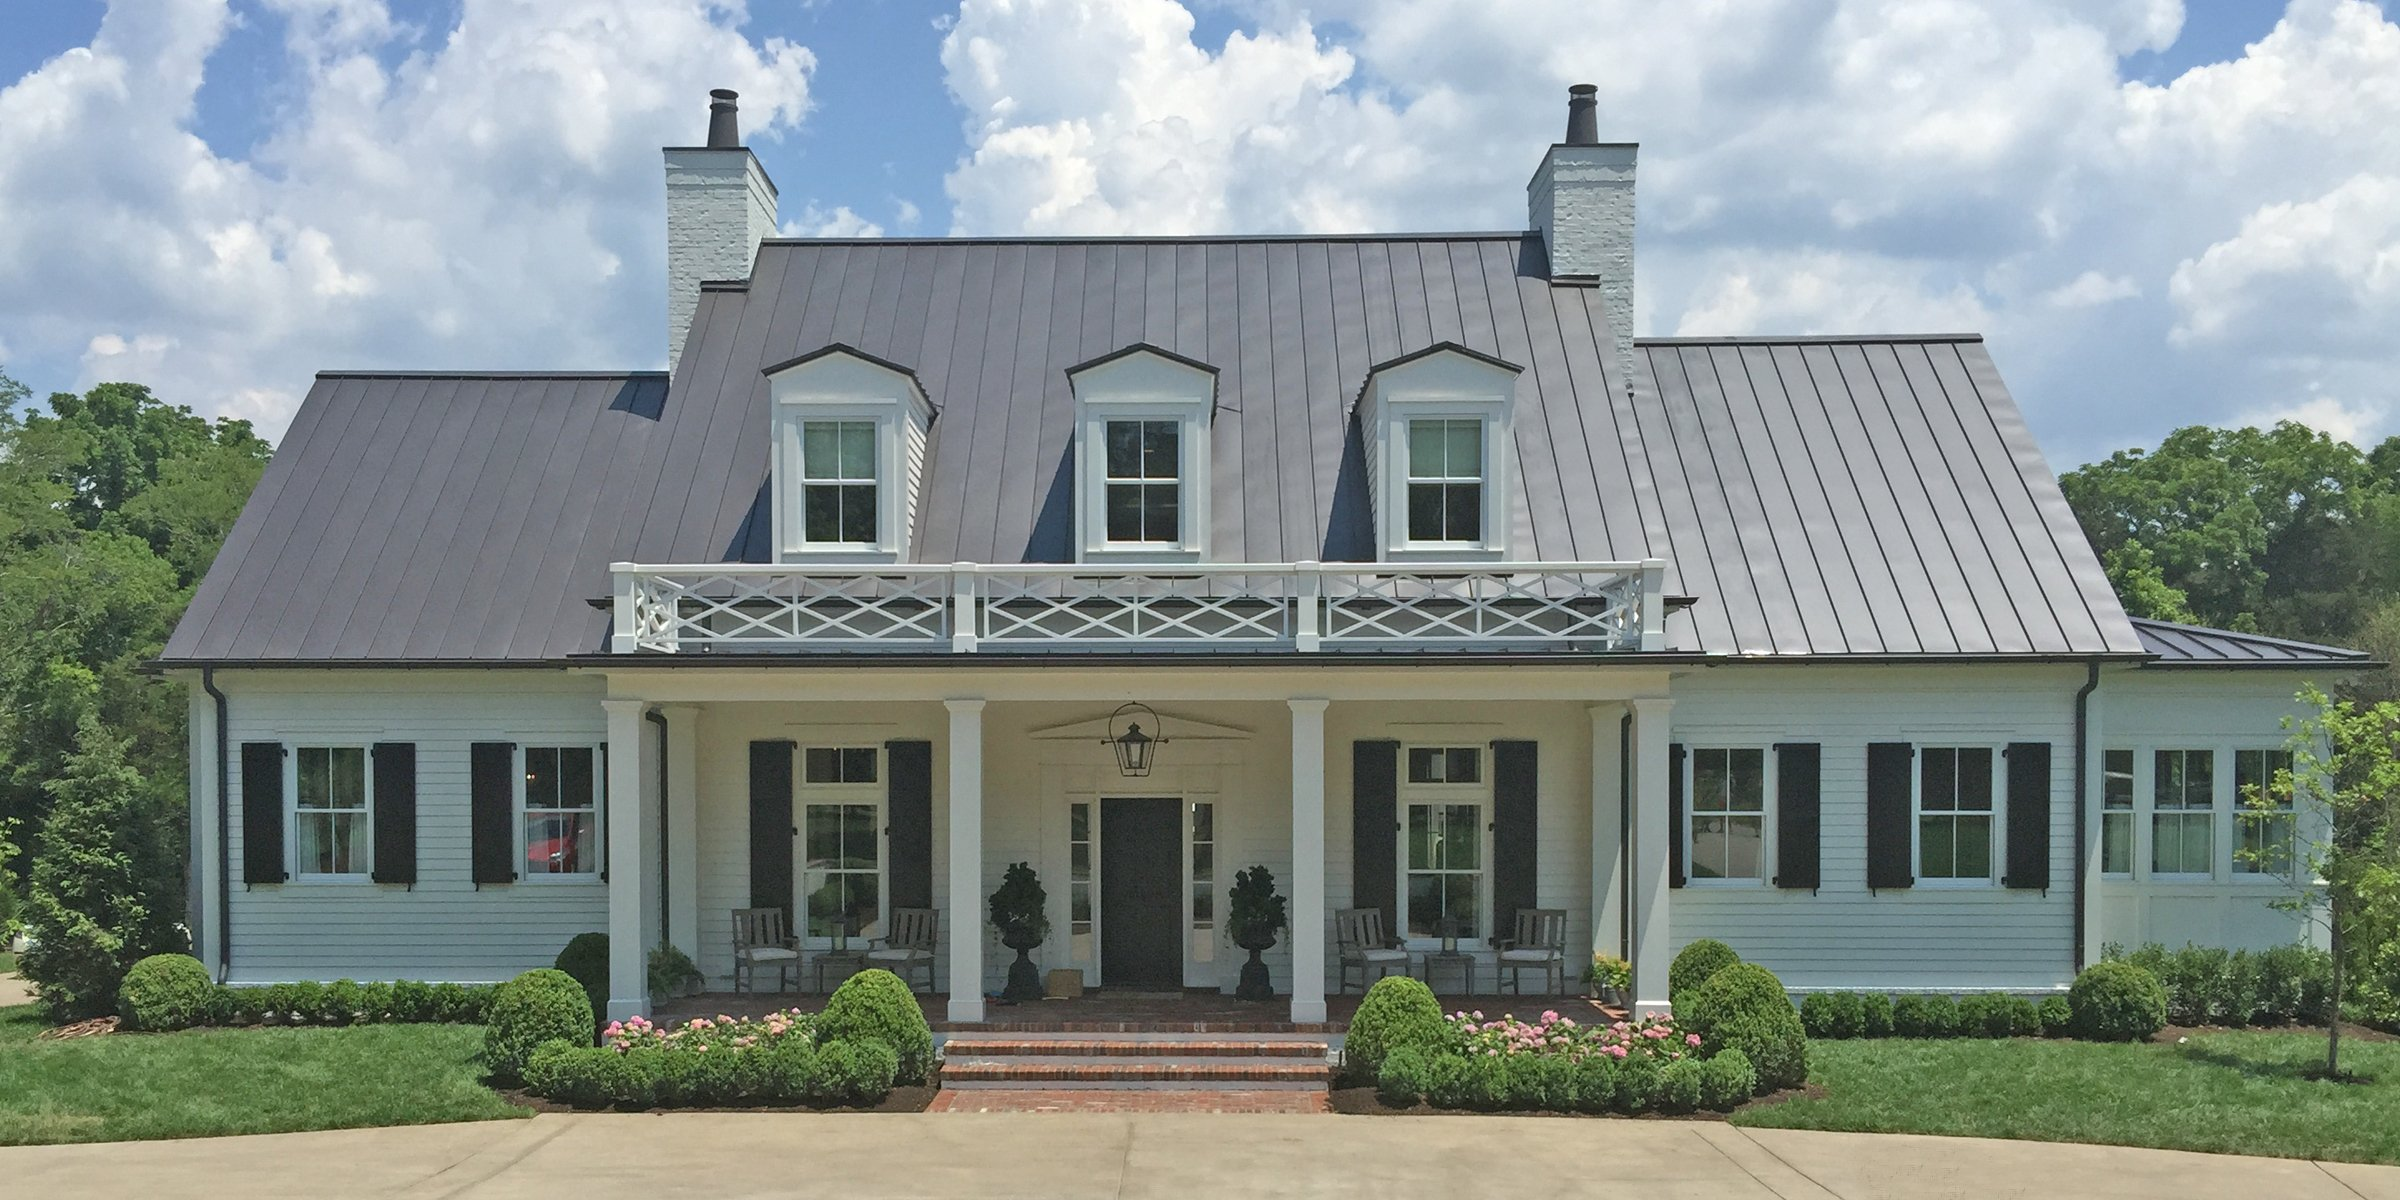 Lose Yourself in the Nashville Symphony Show House